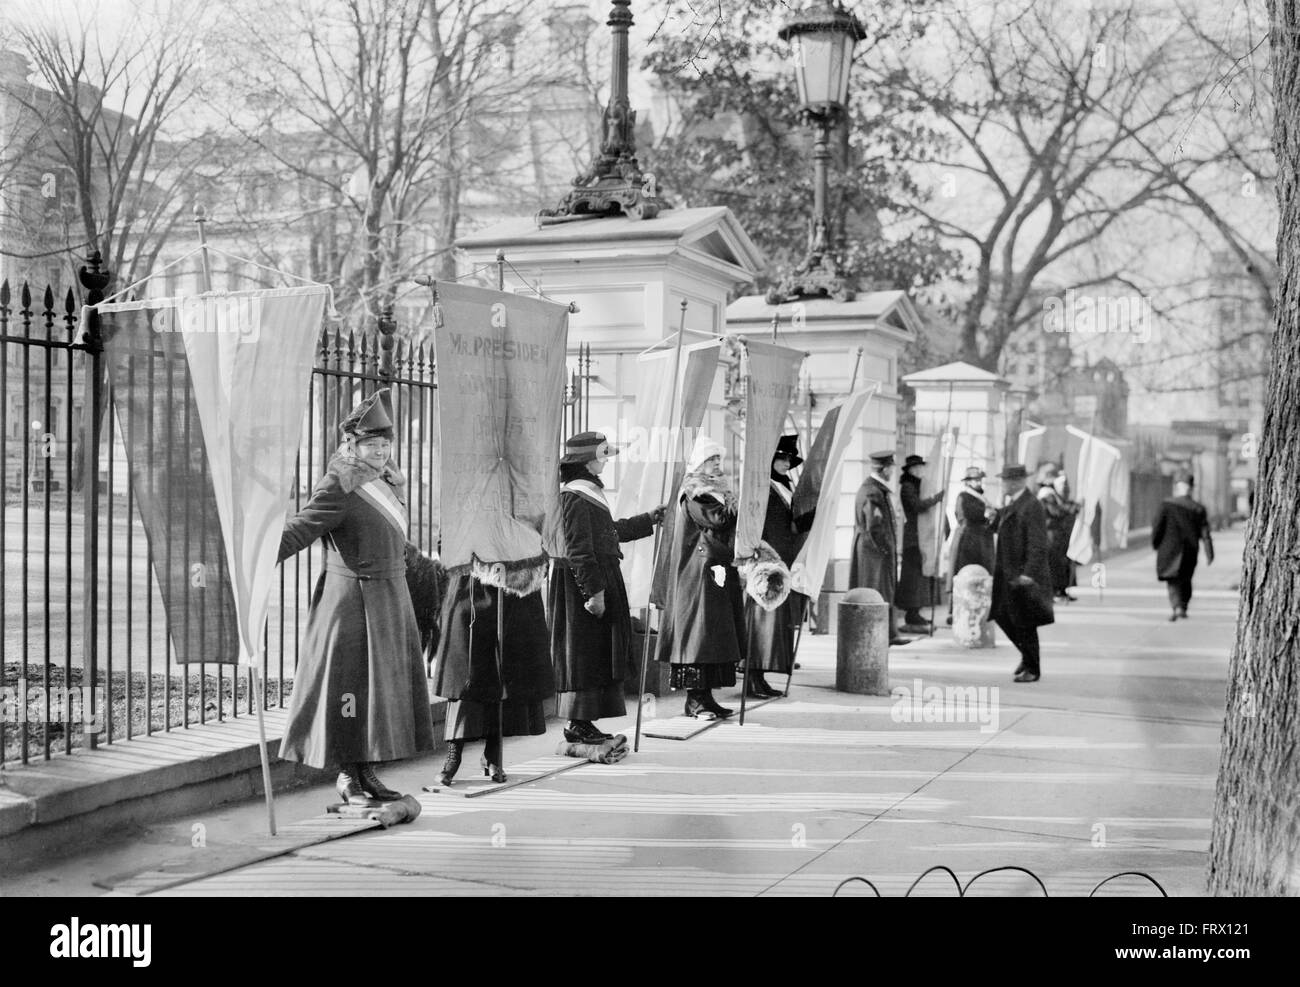 Suffragettes protesting outside the White House, Washington DC, USA.,c.1915-1920 - Stock Image